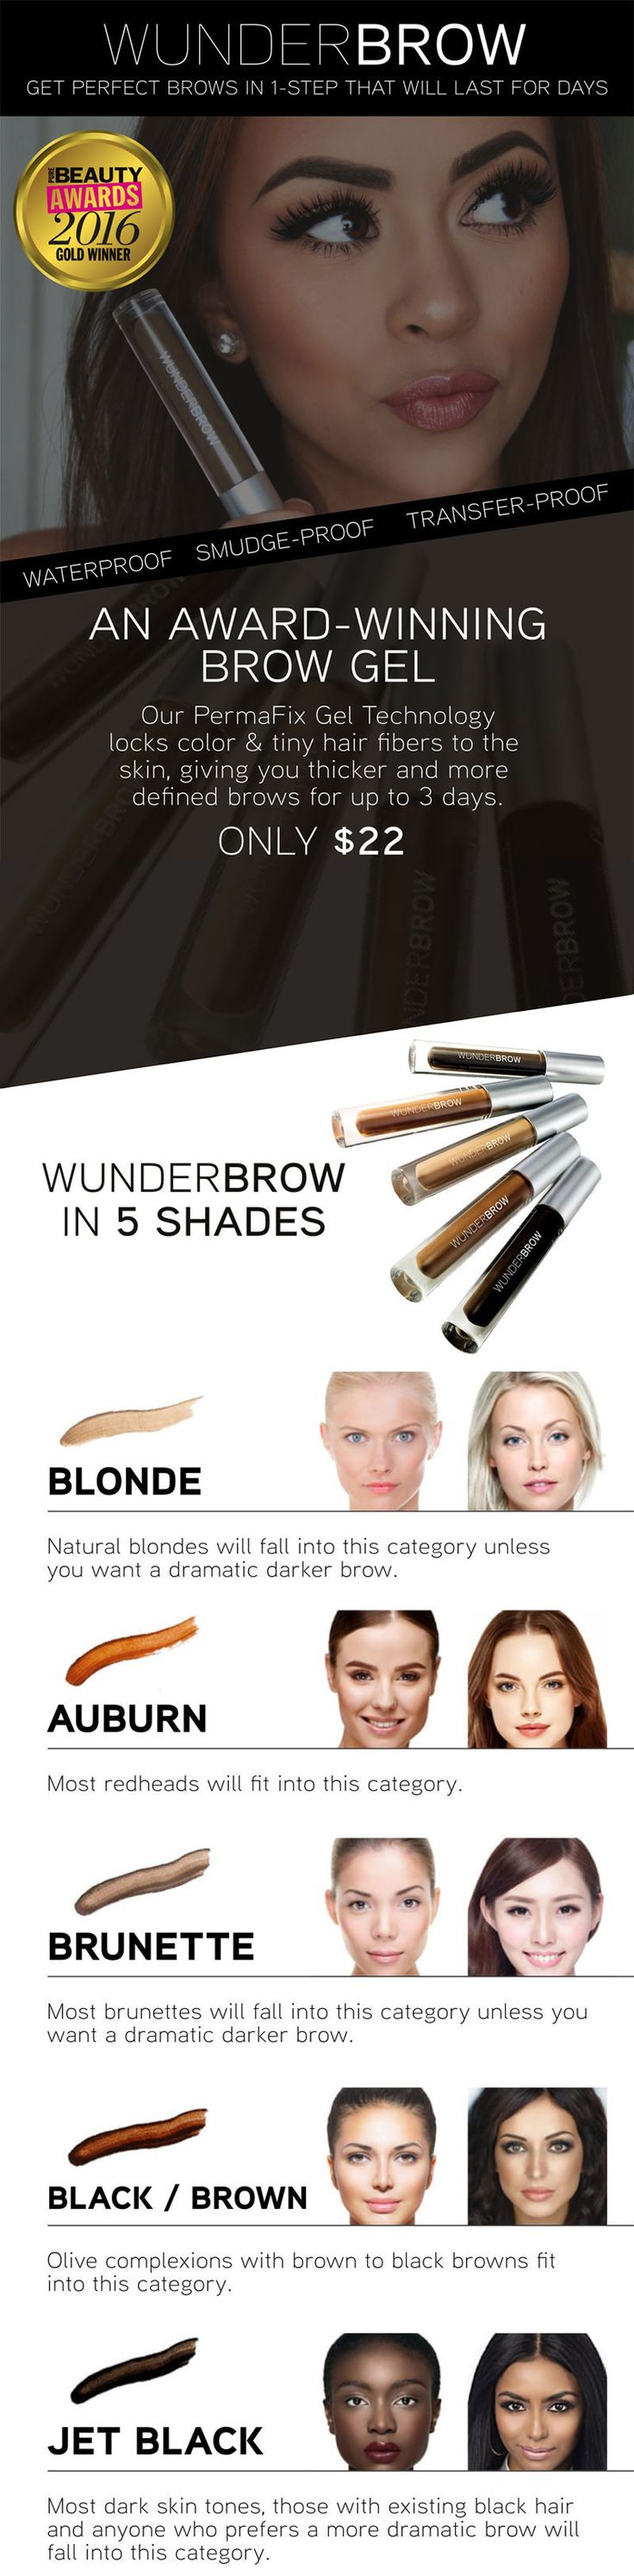 Hair stroke technique eyebrows new jersey - Wunderbrow Is A New One Step Solution Which Allows Women To Easily Fill Define And Shape Their Eyebrows With Natural Looking Color That Lasts For Days